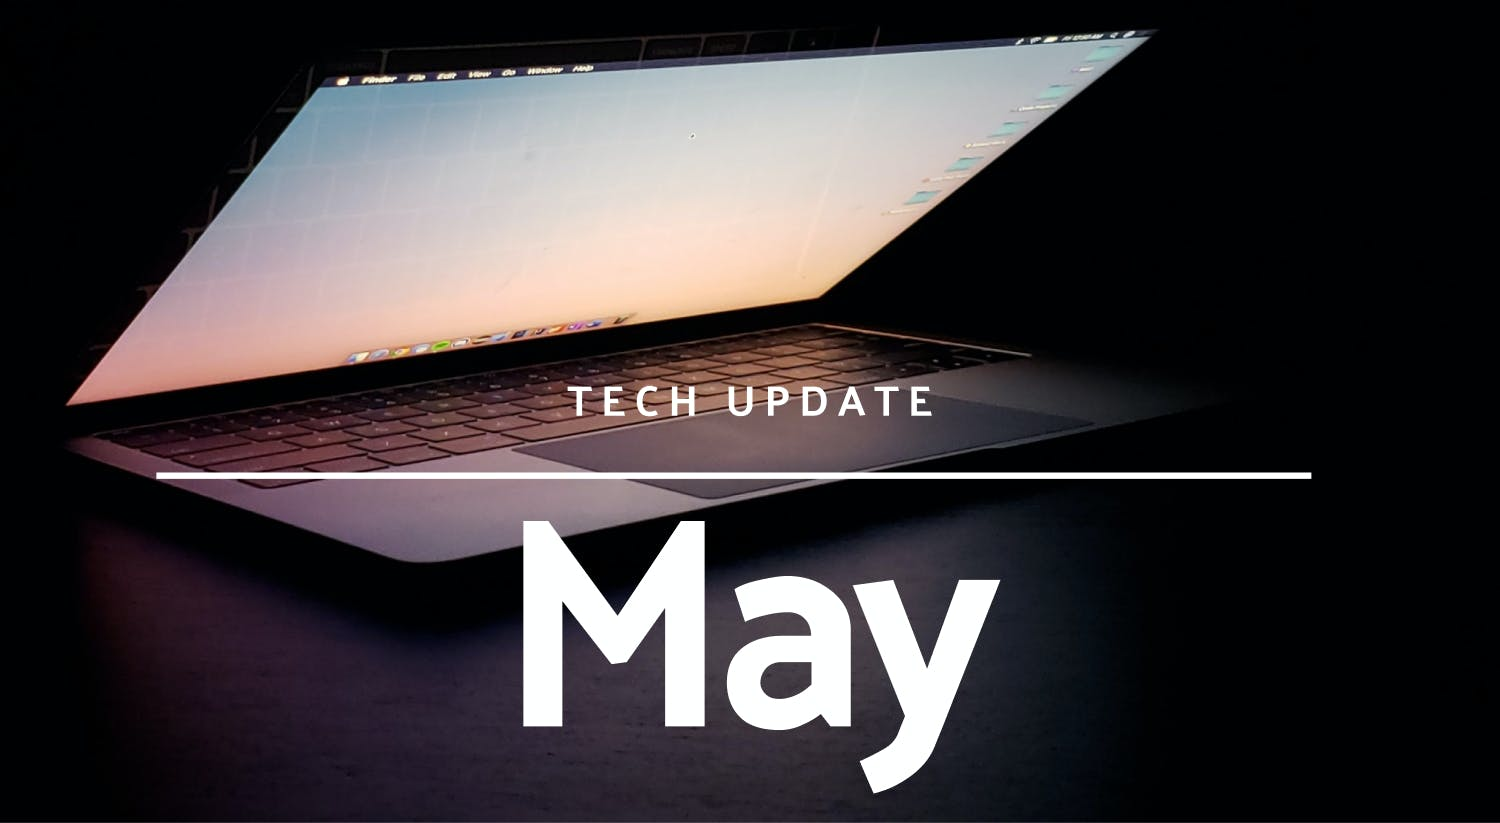 Technology update for May